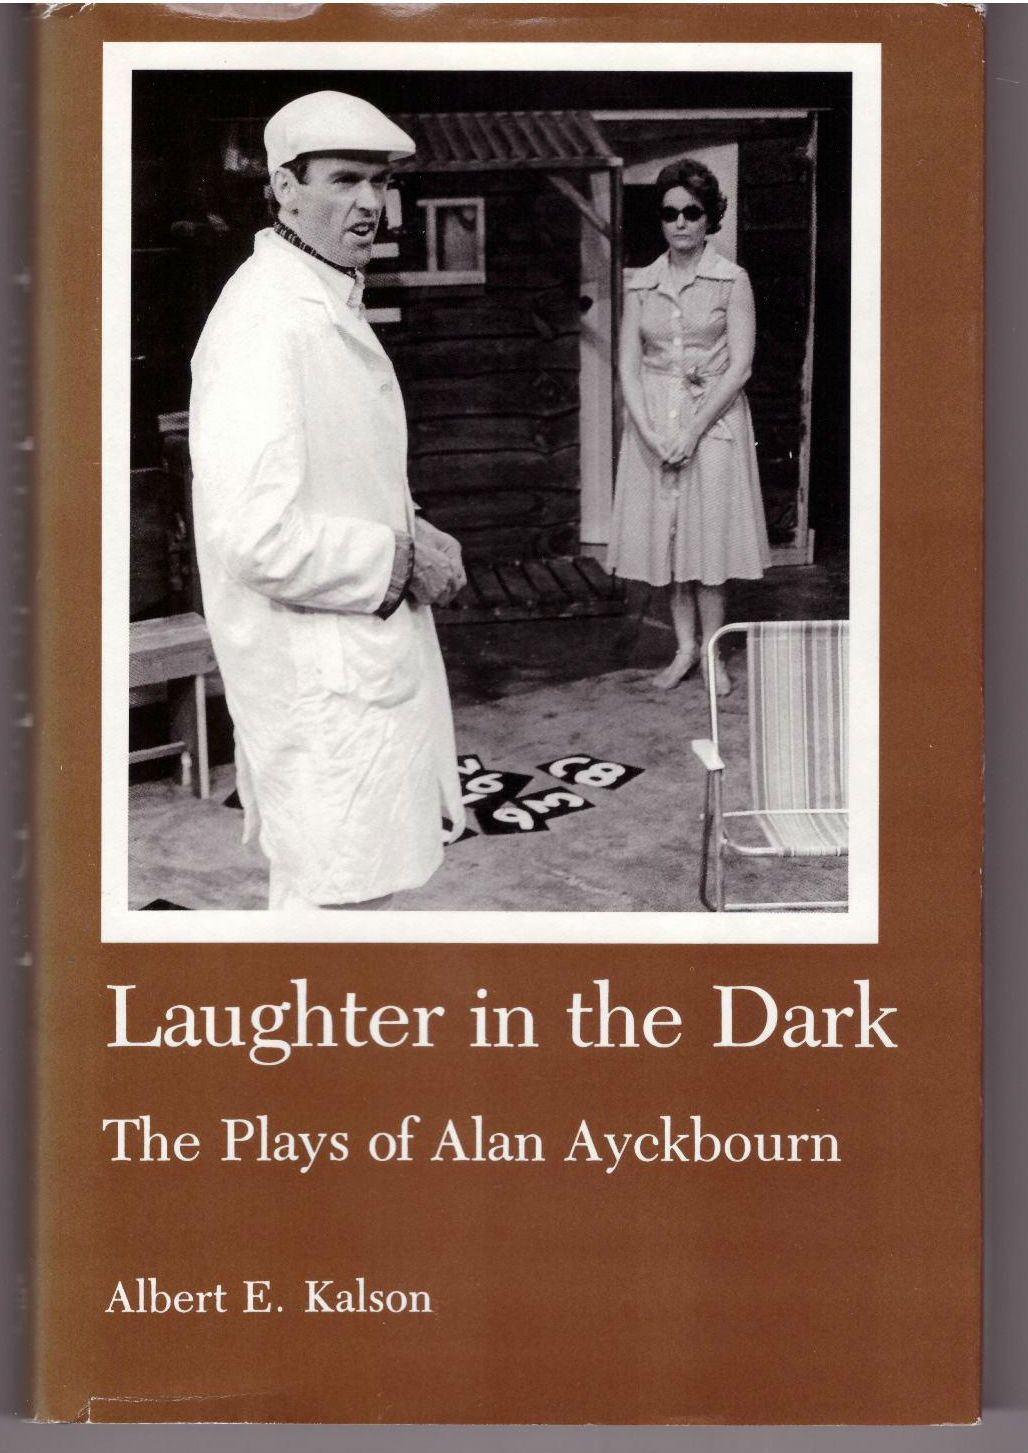 Laughter in the Dark: The Plays of Alan Ayckbourn, Kalson, Albert E.